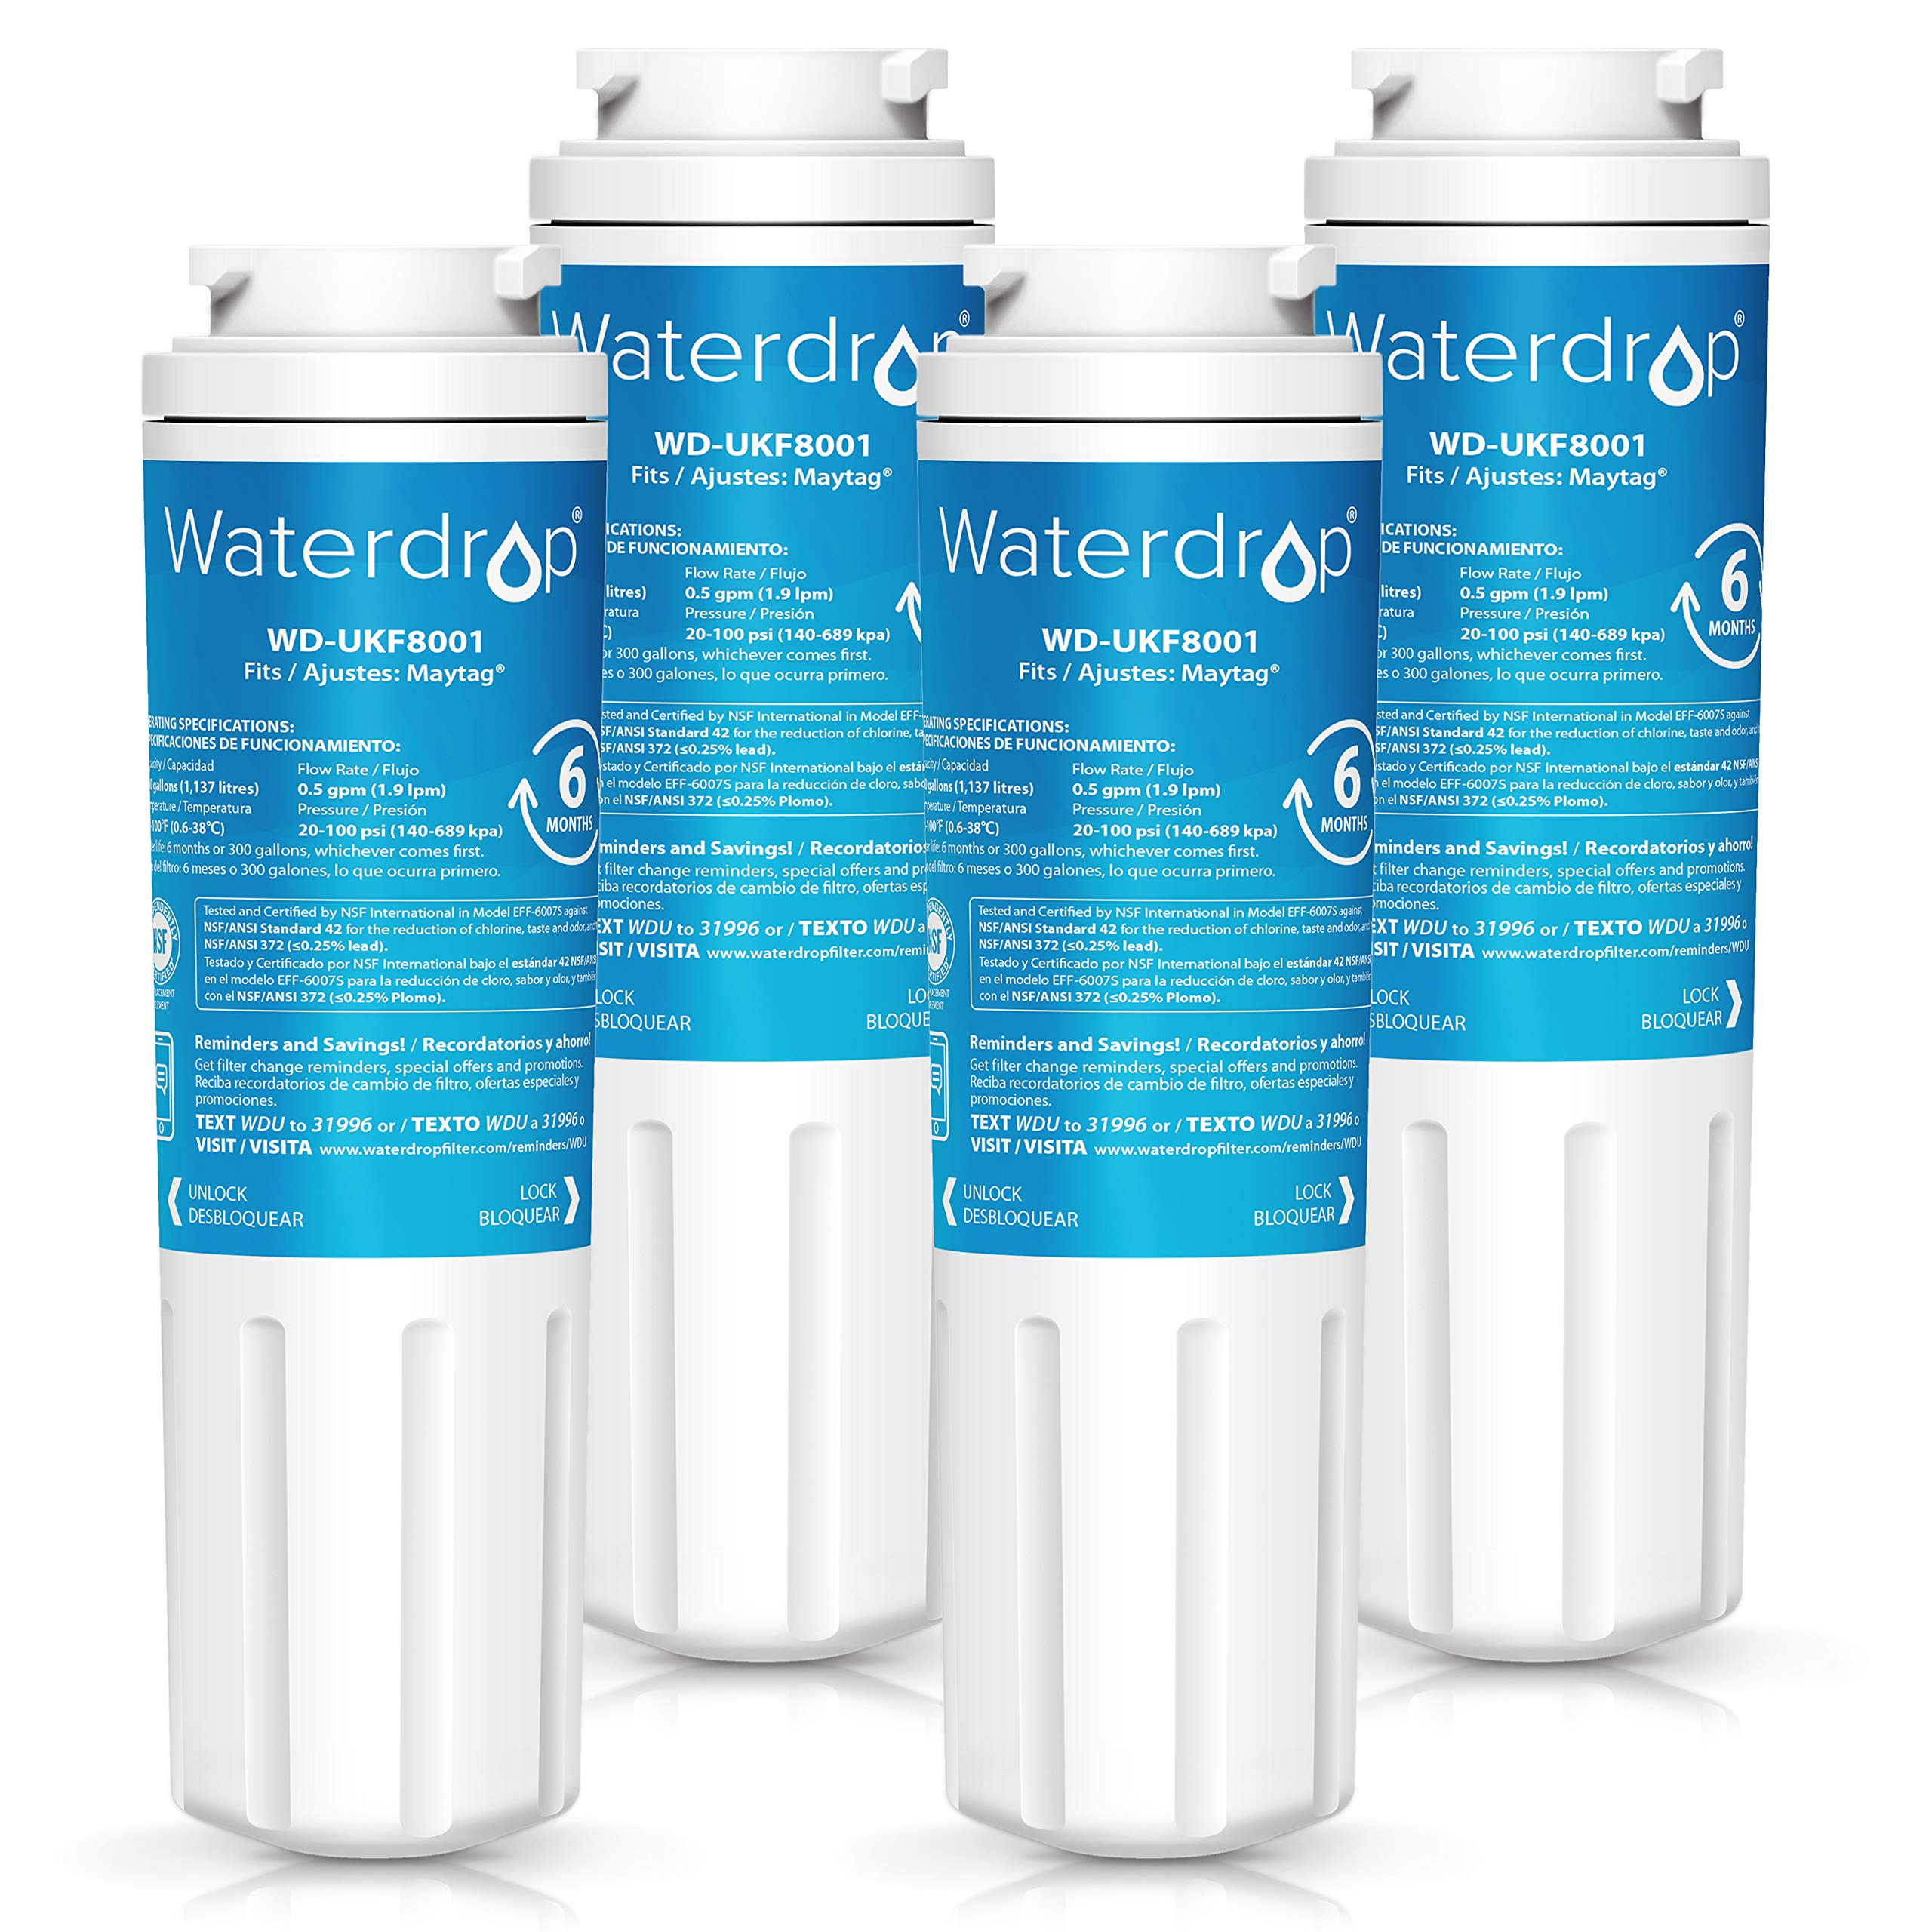 Waterdrop UKF8001 Replacement Refrigerator Water Filter, Compatible with Maytag UKF8001, UKF8001AXX, UKF8001P, Whirlpool 4396395, 469006, EDR4RXD1, EveryDrop Filter 4, Puriclean II, Standard, 4 Pack by Waterdrop